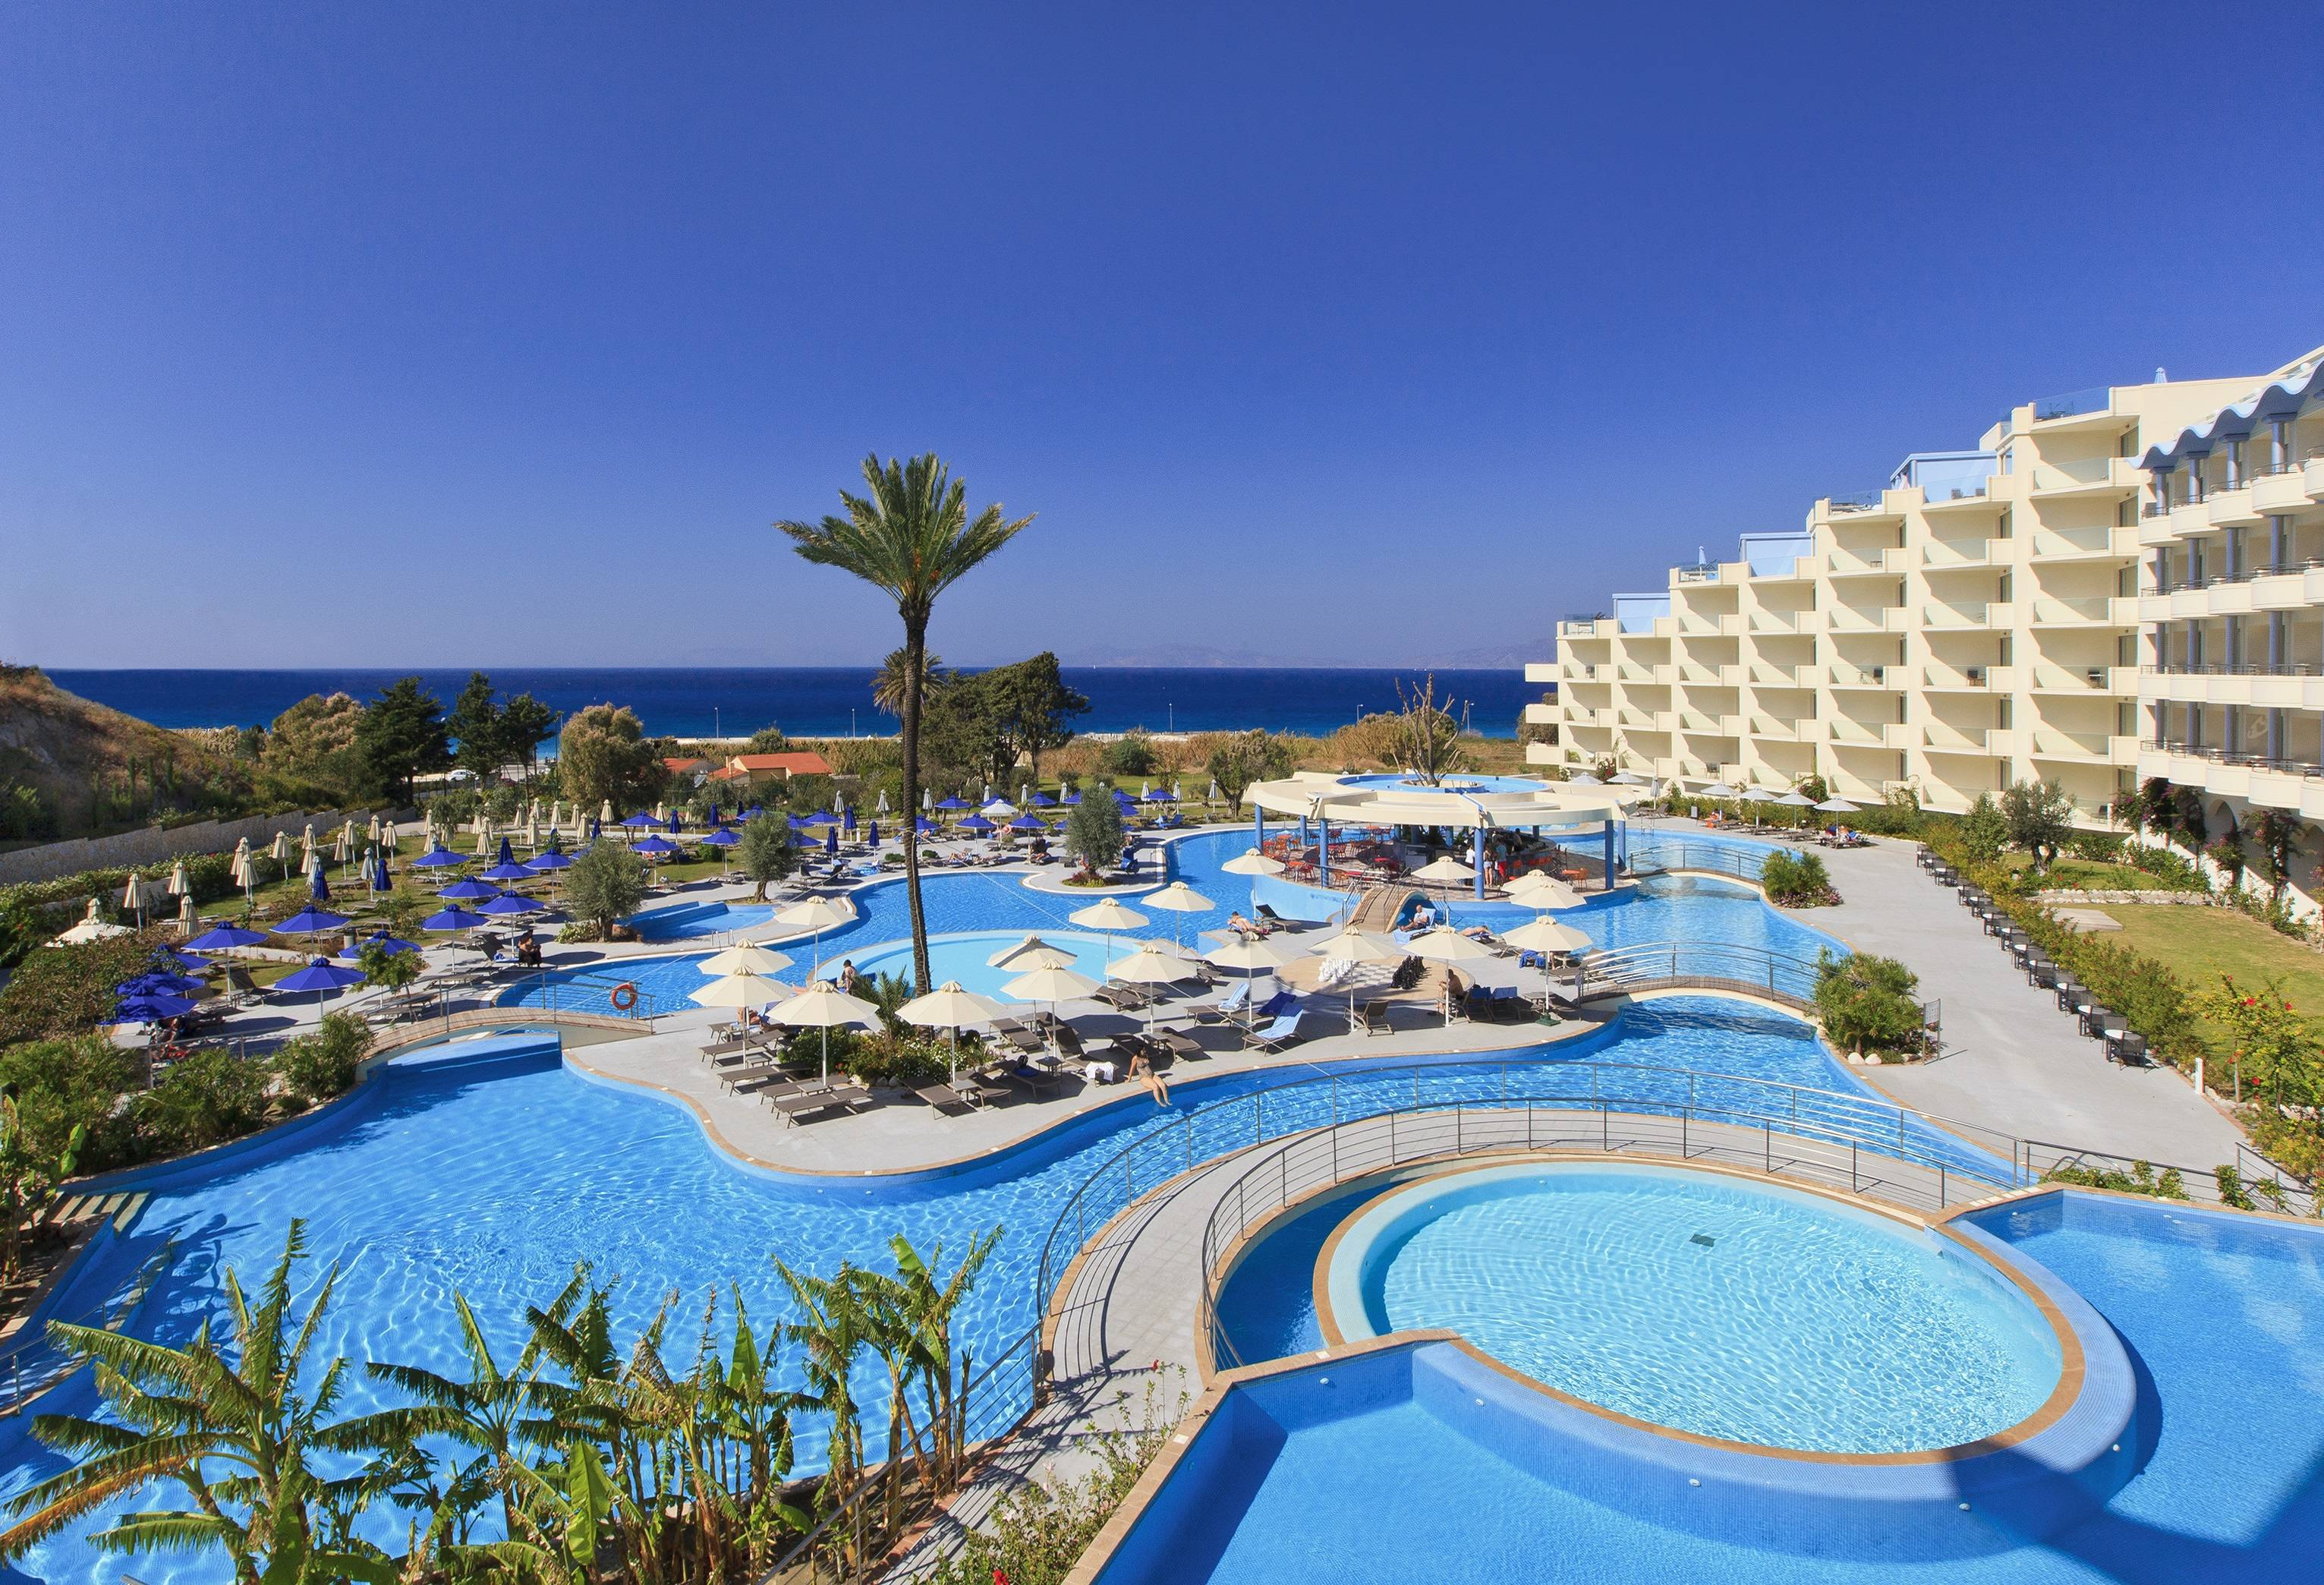 7nt-5-luxury-rhodes-holiday-w-breakfast-included